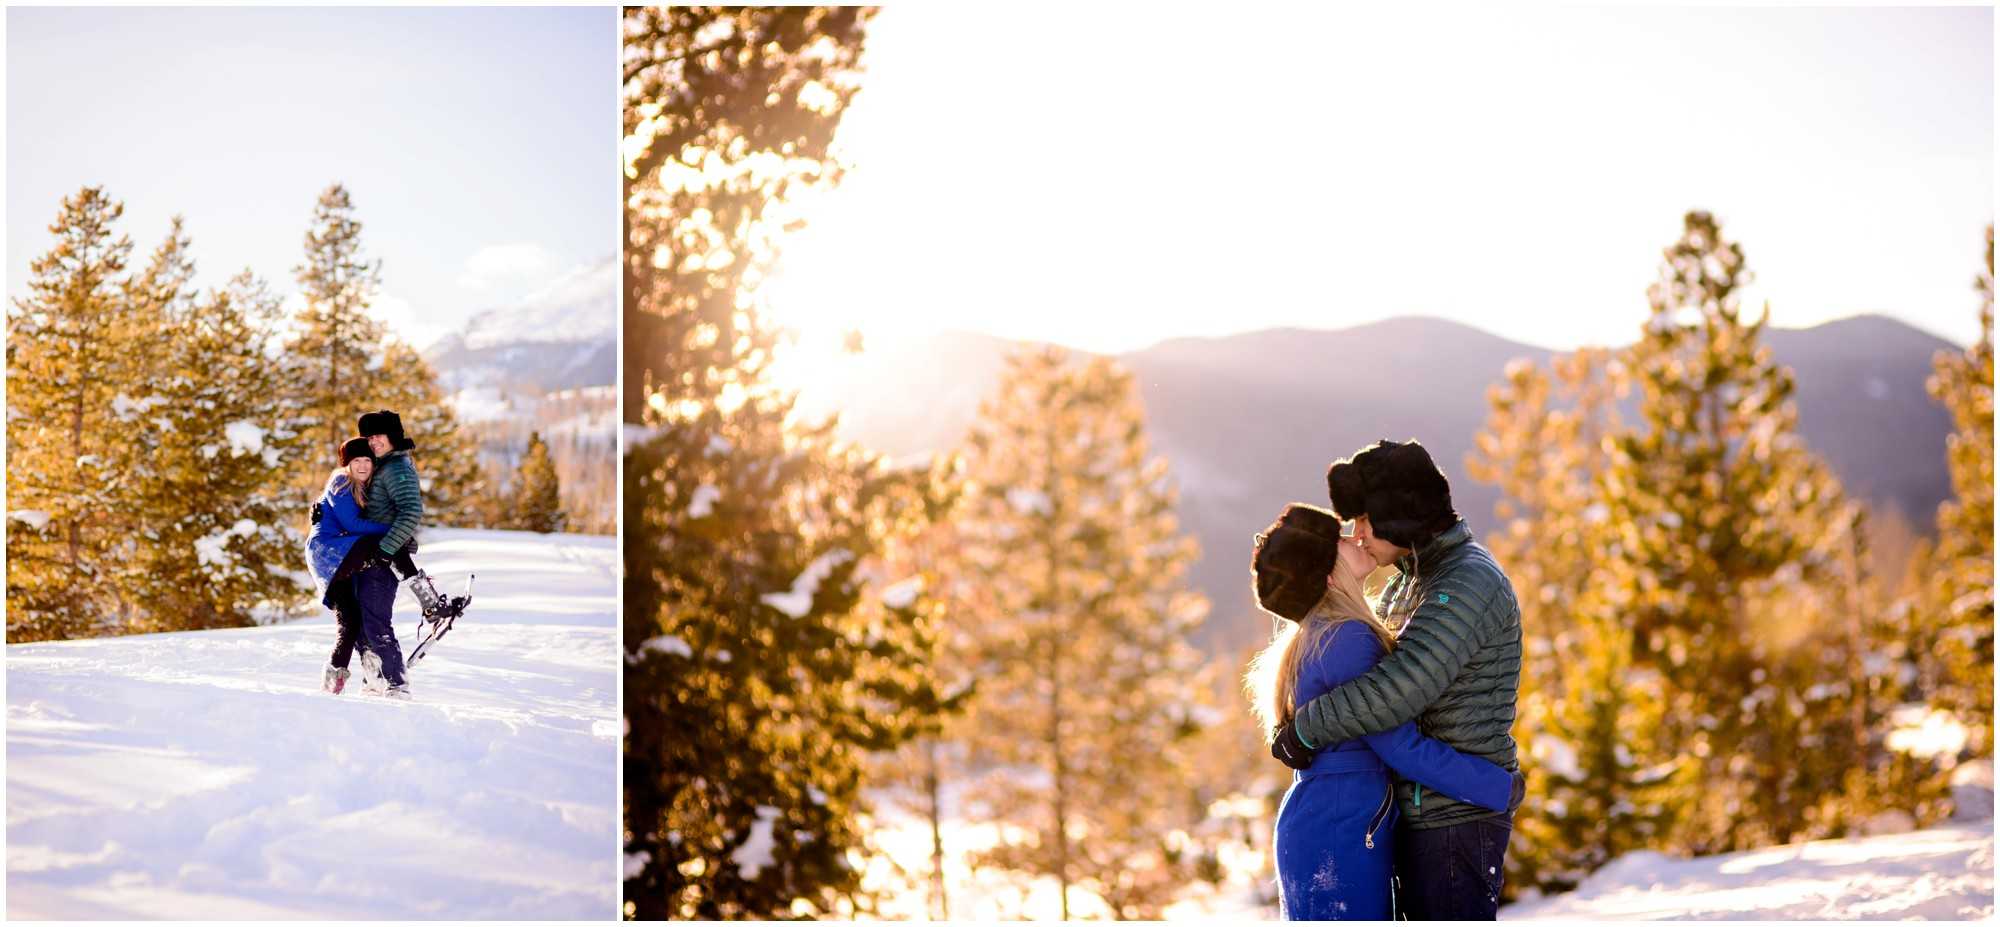 141-Lake-Dillon-Frisco-Winter-Engagement.jpg